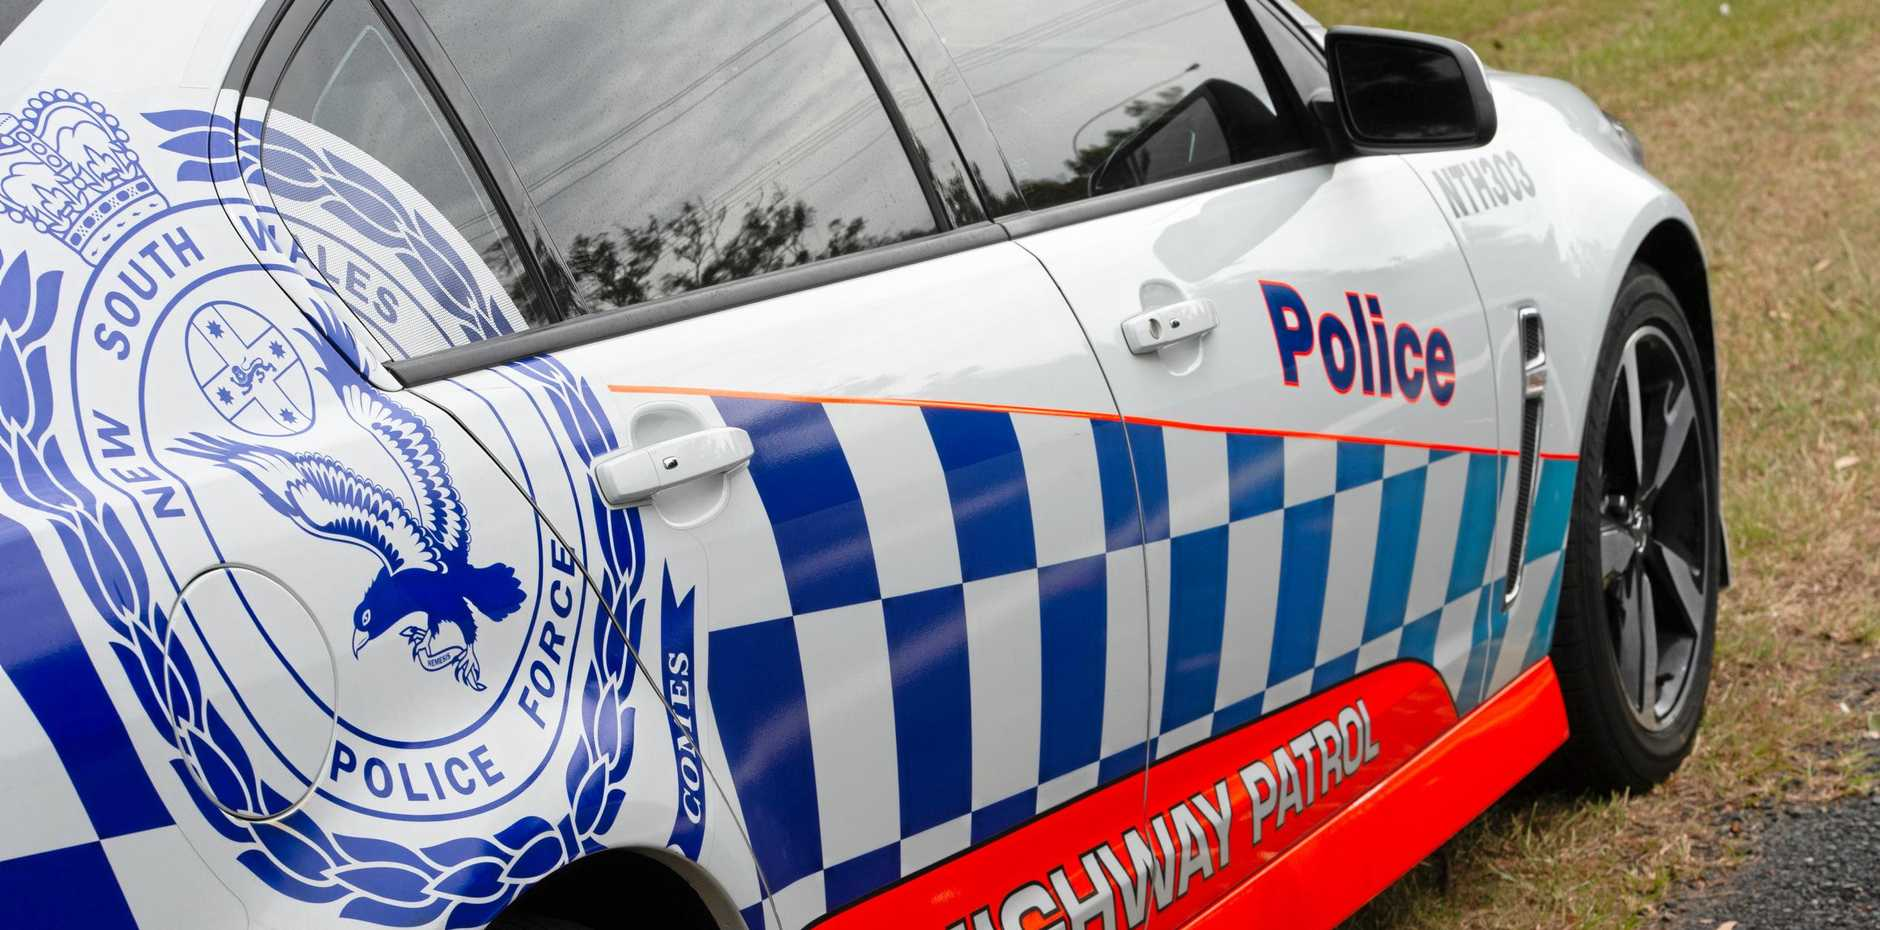 A learner driver has been arrested following an alleged car theft in Casuarina.